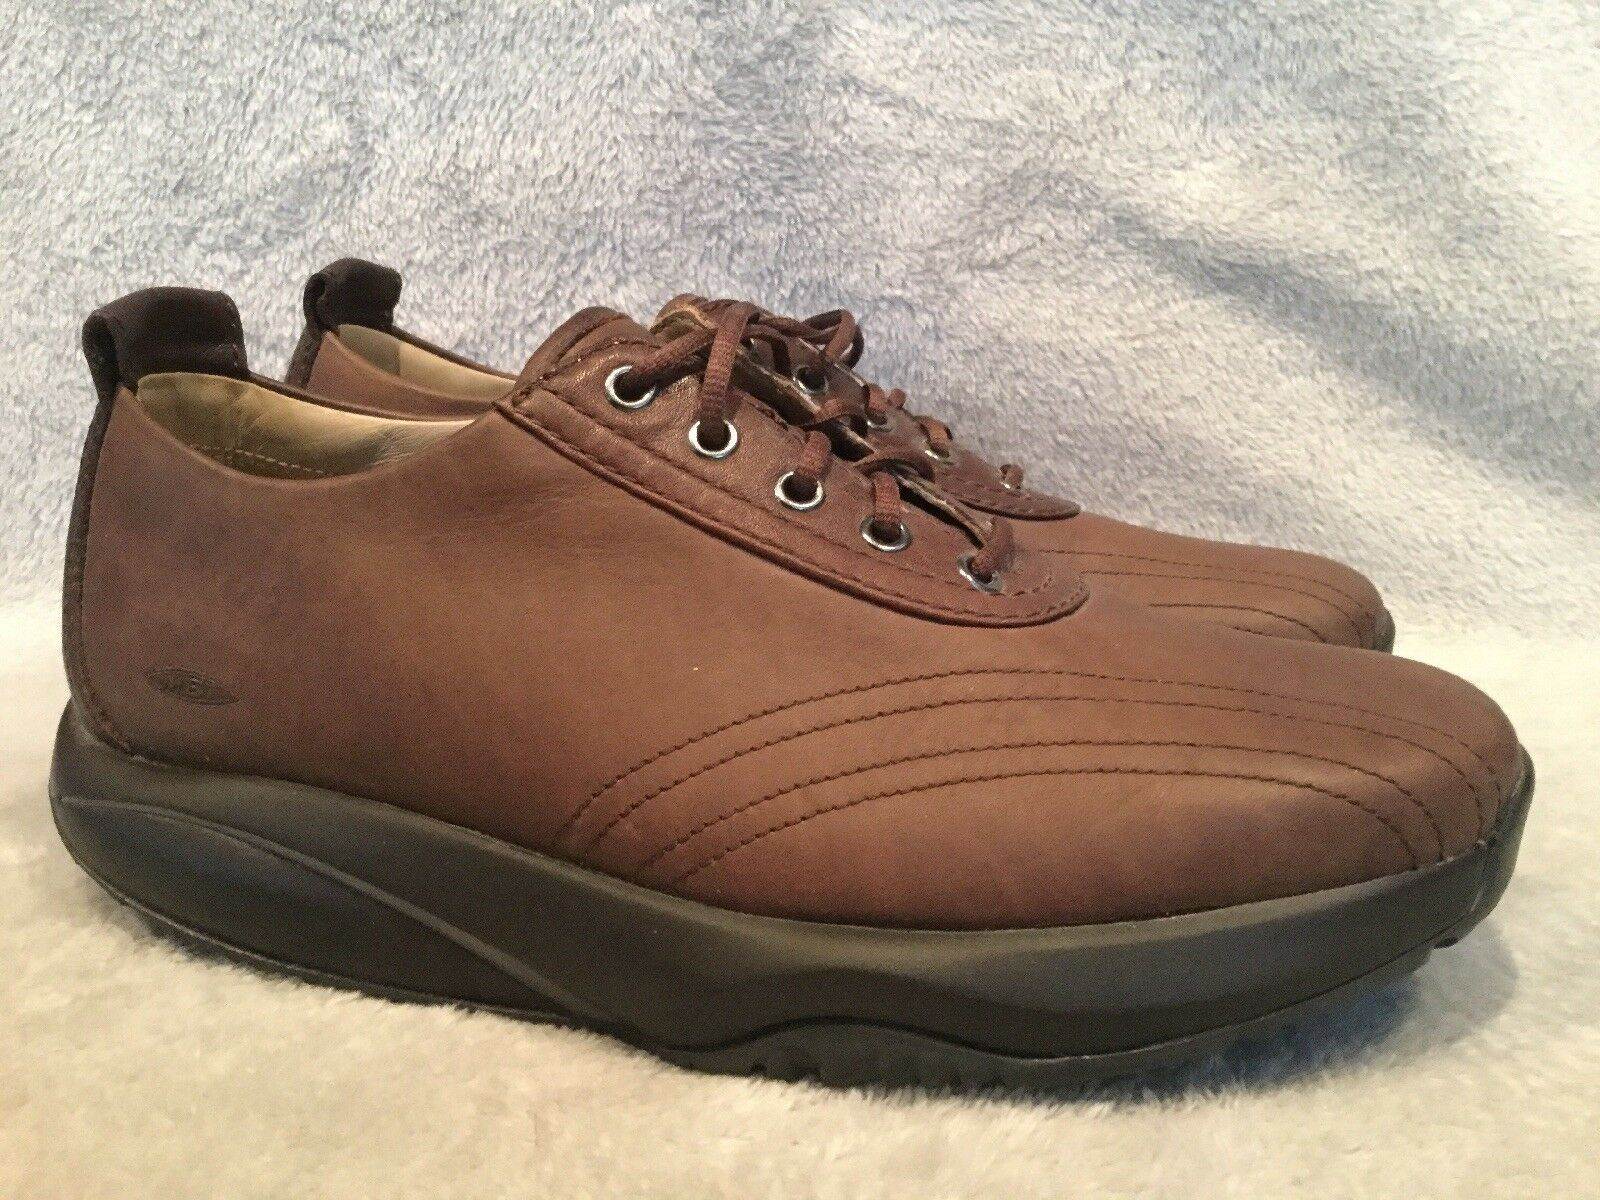 MBT Wingu Brown Walking Oxfords Comfort shoes Womens Size 39 8.5